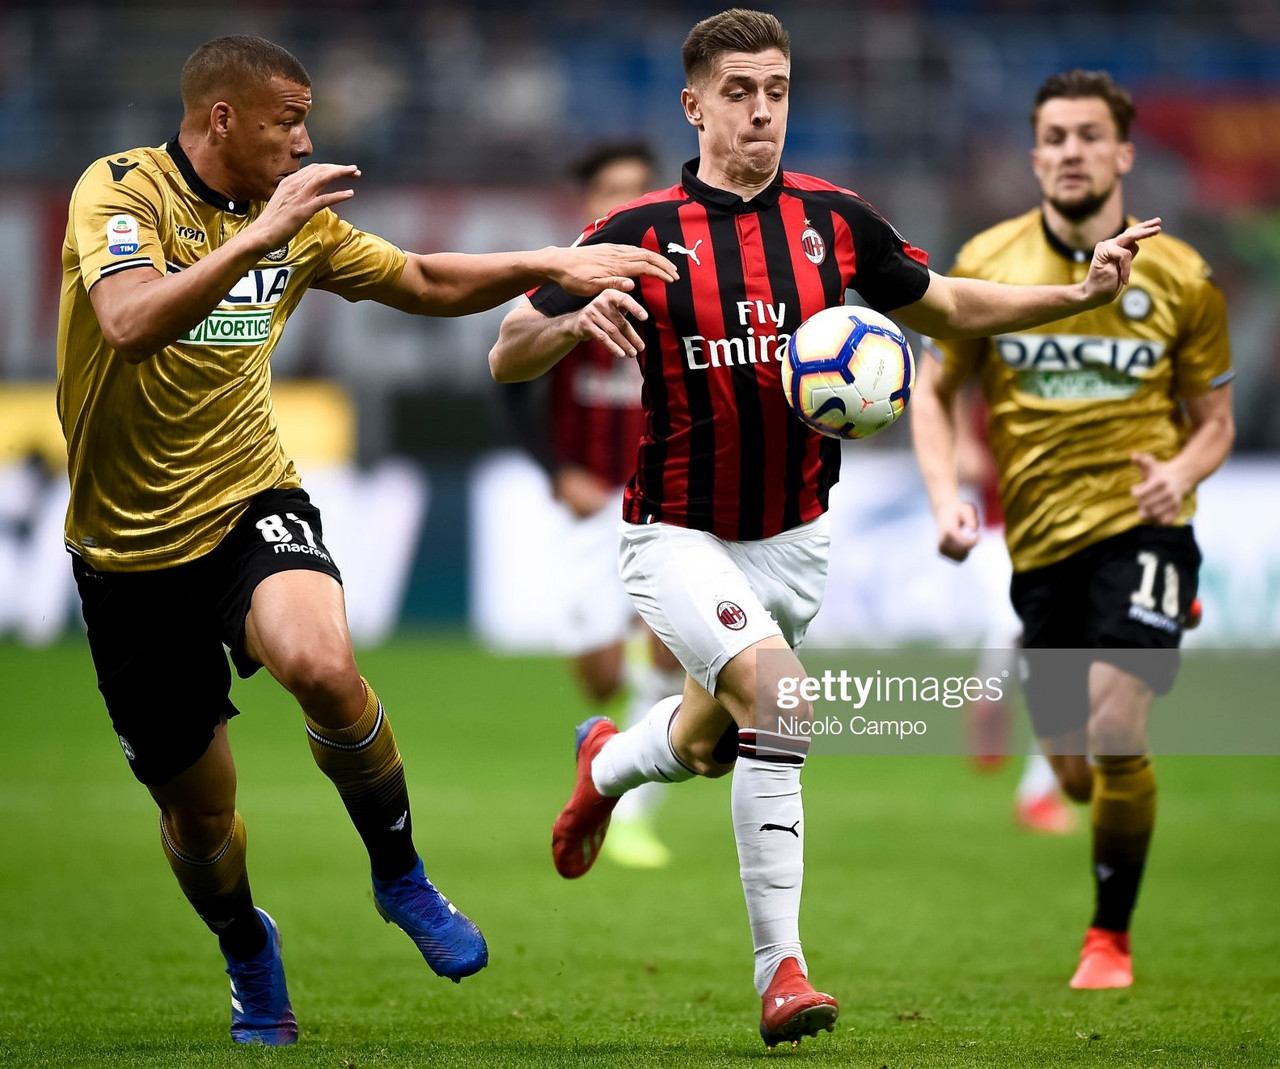 AC Milan vs Udinese Preview: Hosts starting race for Champions League spots